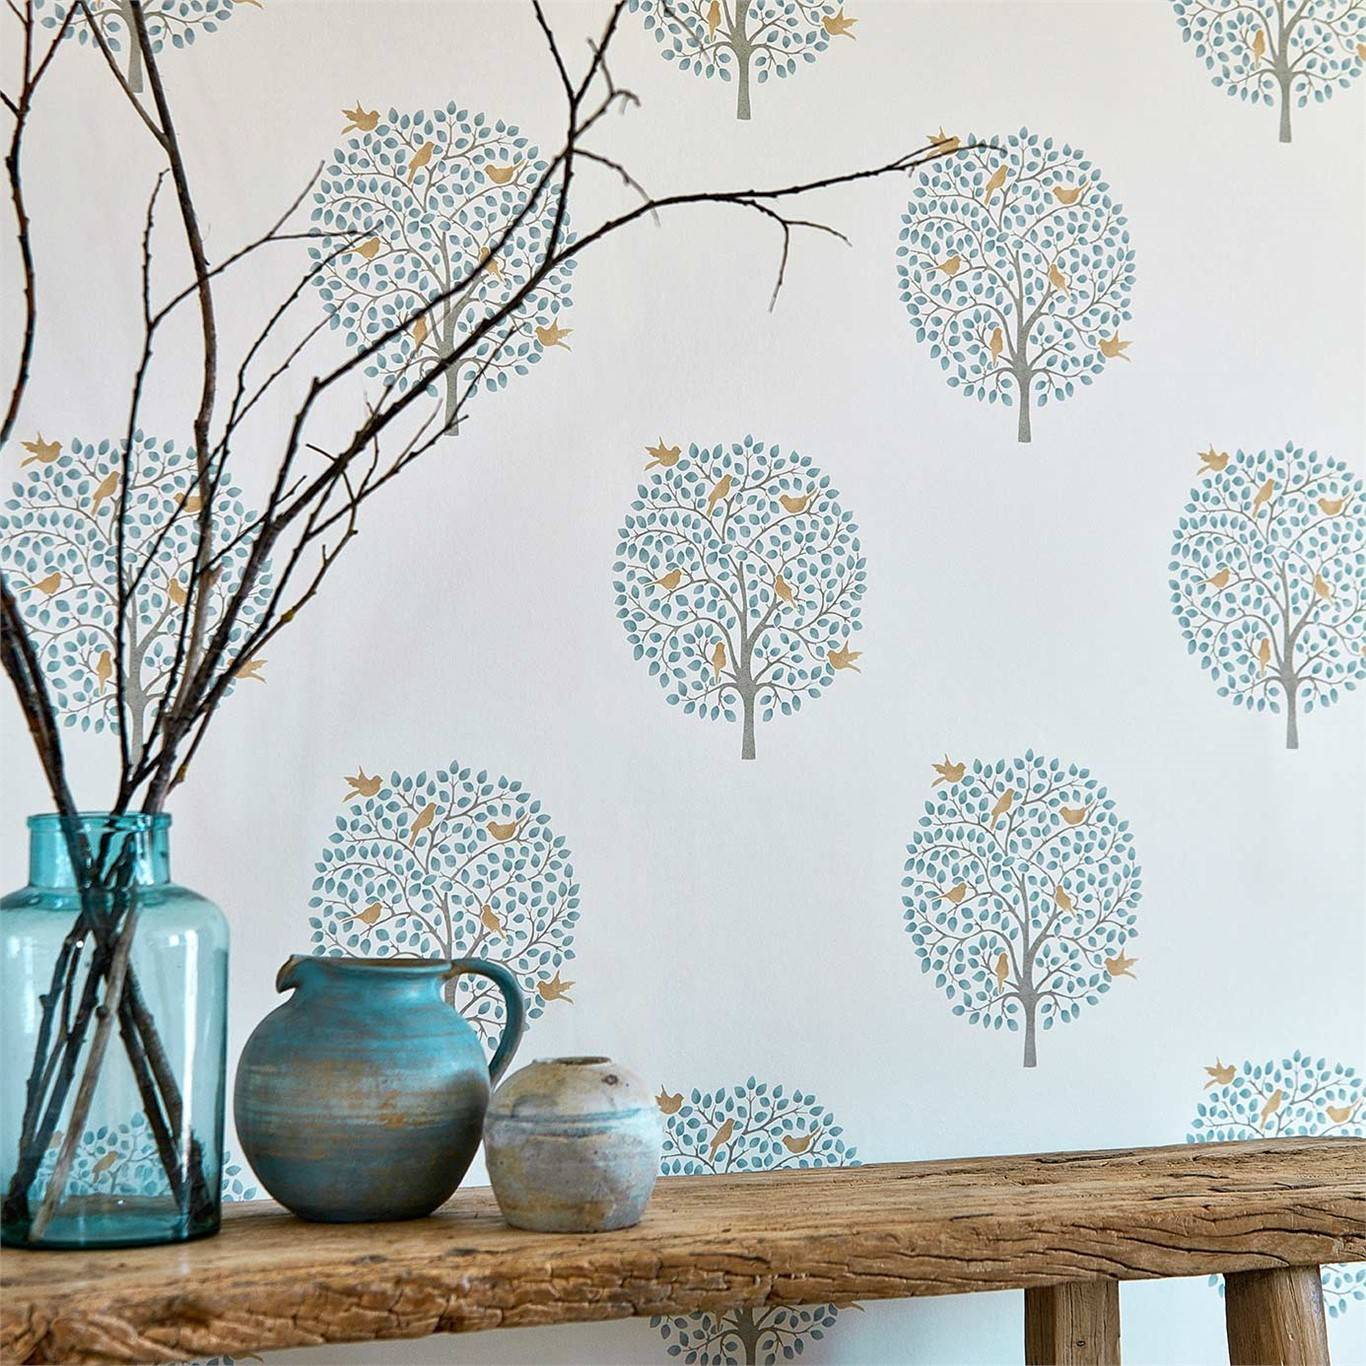 Papel pintado room-neutral-botanical-bay-tree-potting-room. Toques primaverales en azul